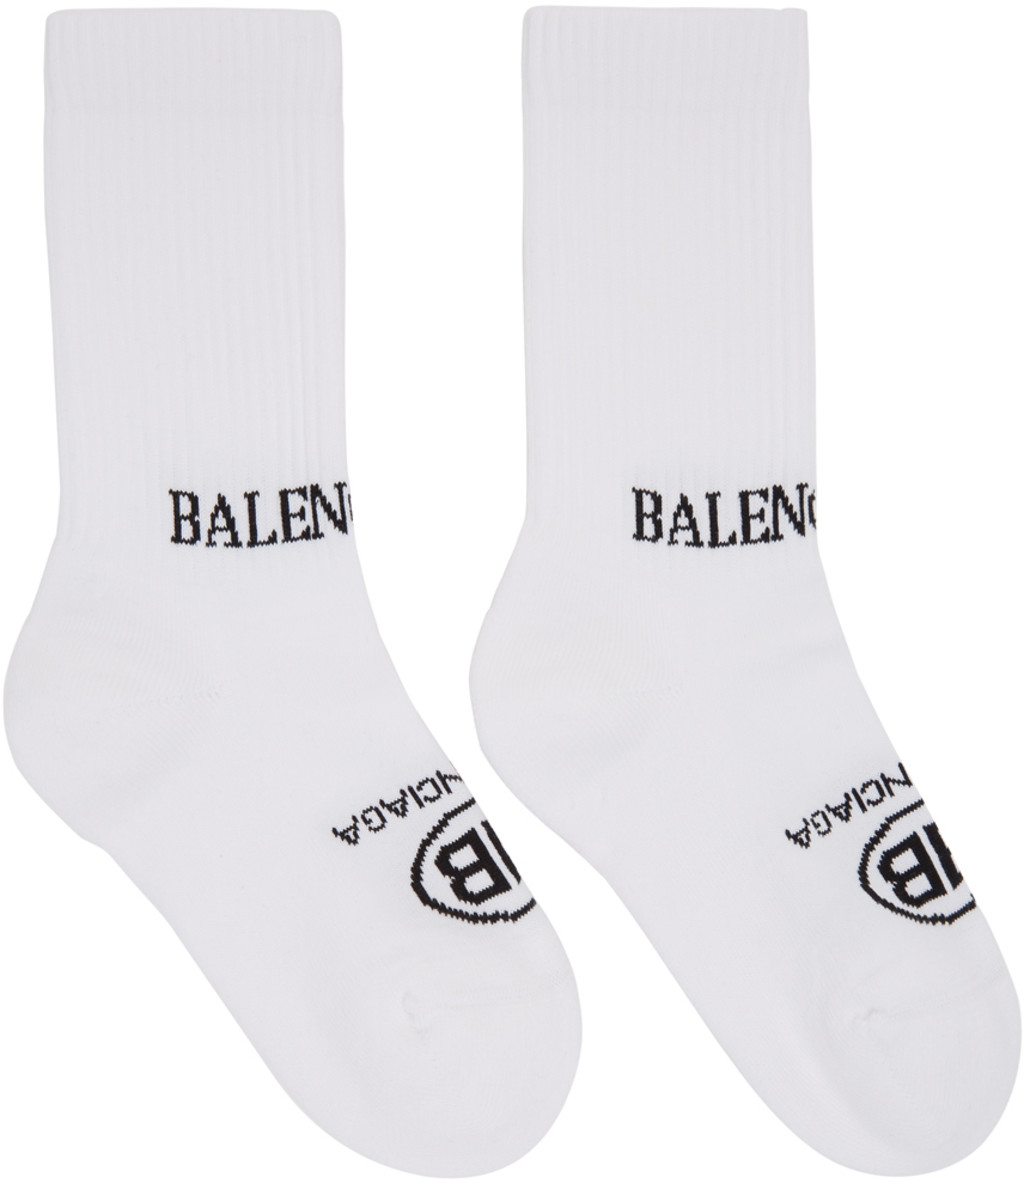 White Tight Logo Socks Balenciaga